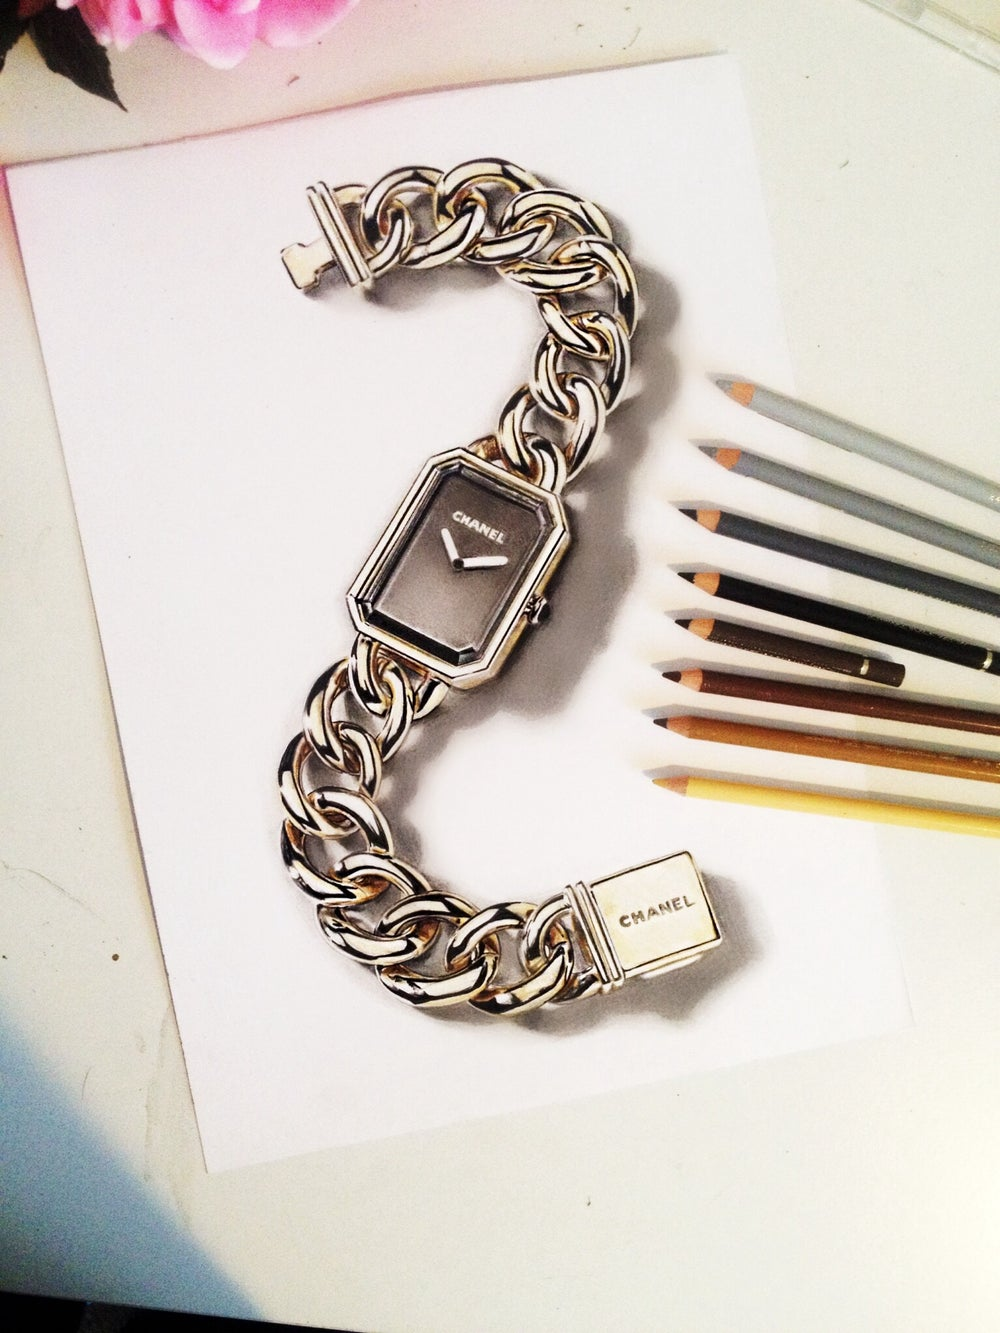 Image of Chanel watch